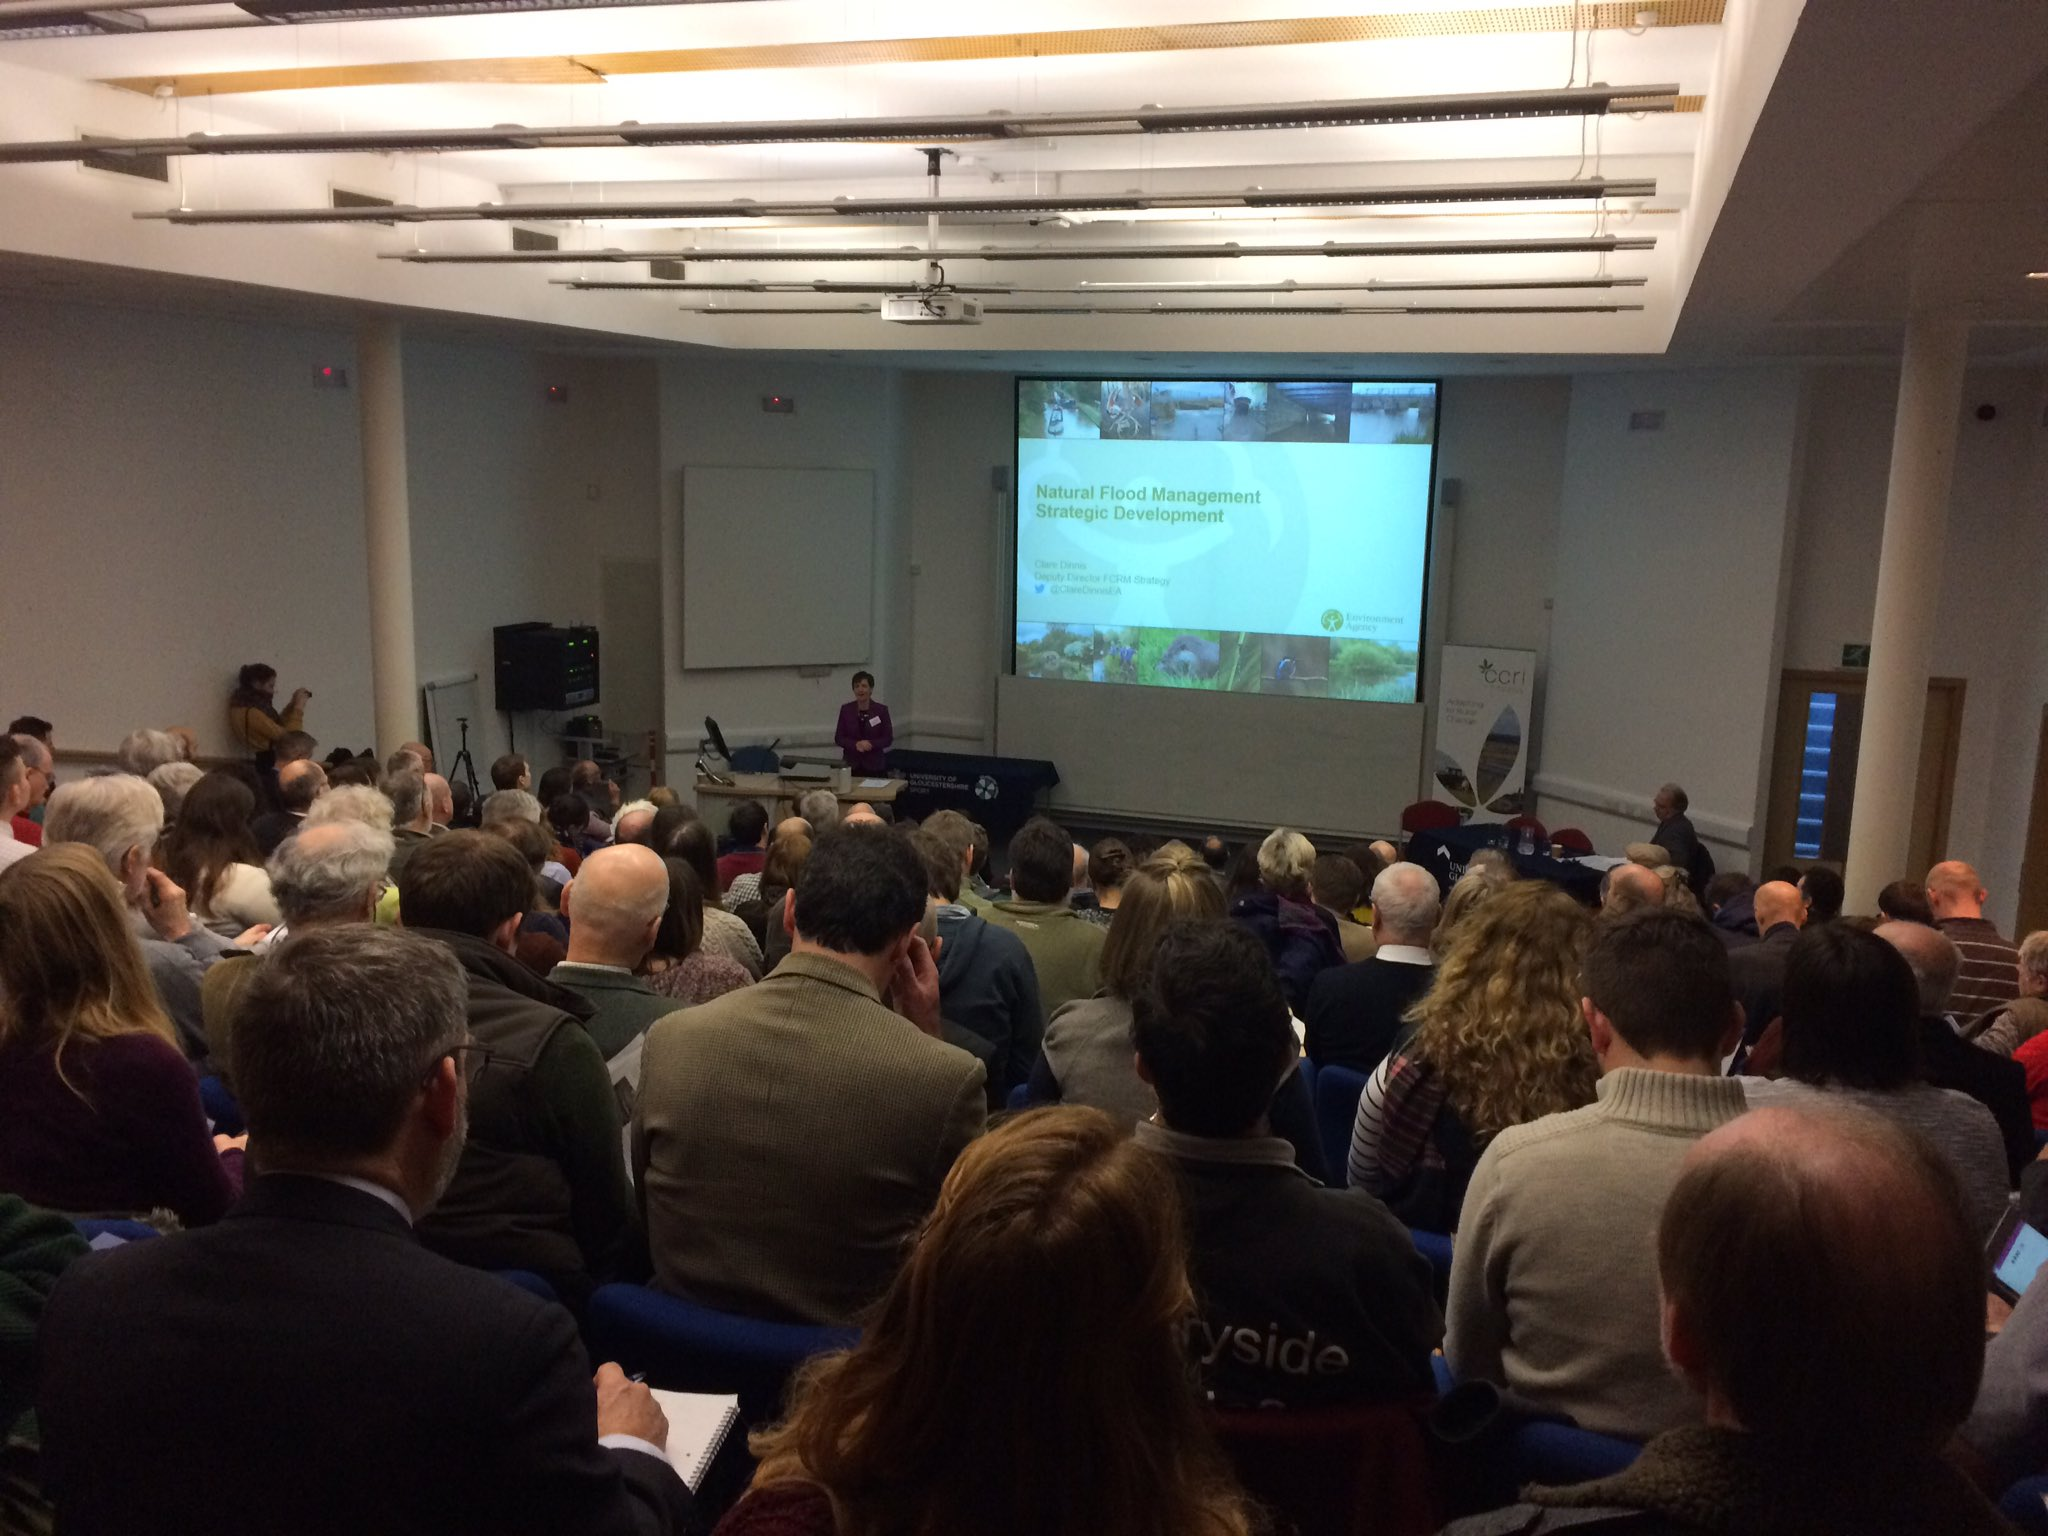 Packed lecture theater at @uniofglos for start of #GlosNFM17 with an overview of natural flood management by @ClareDinnisEA #slowtheflow https://t.co/HNqFb7XQWE